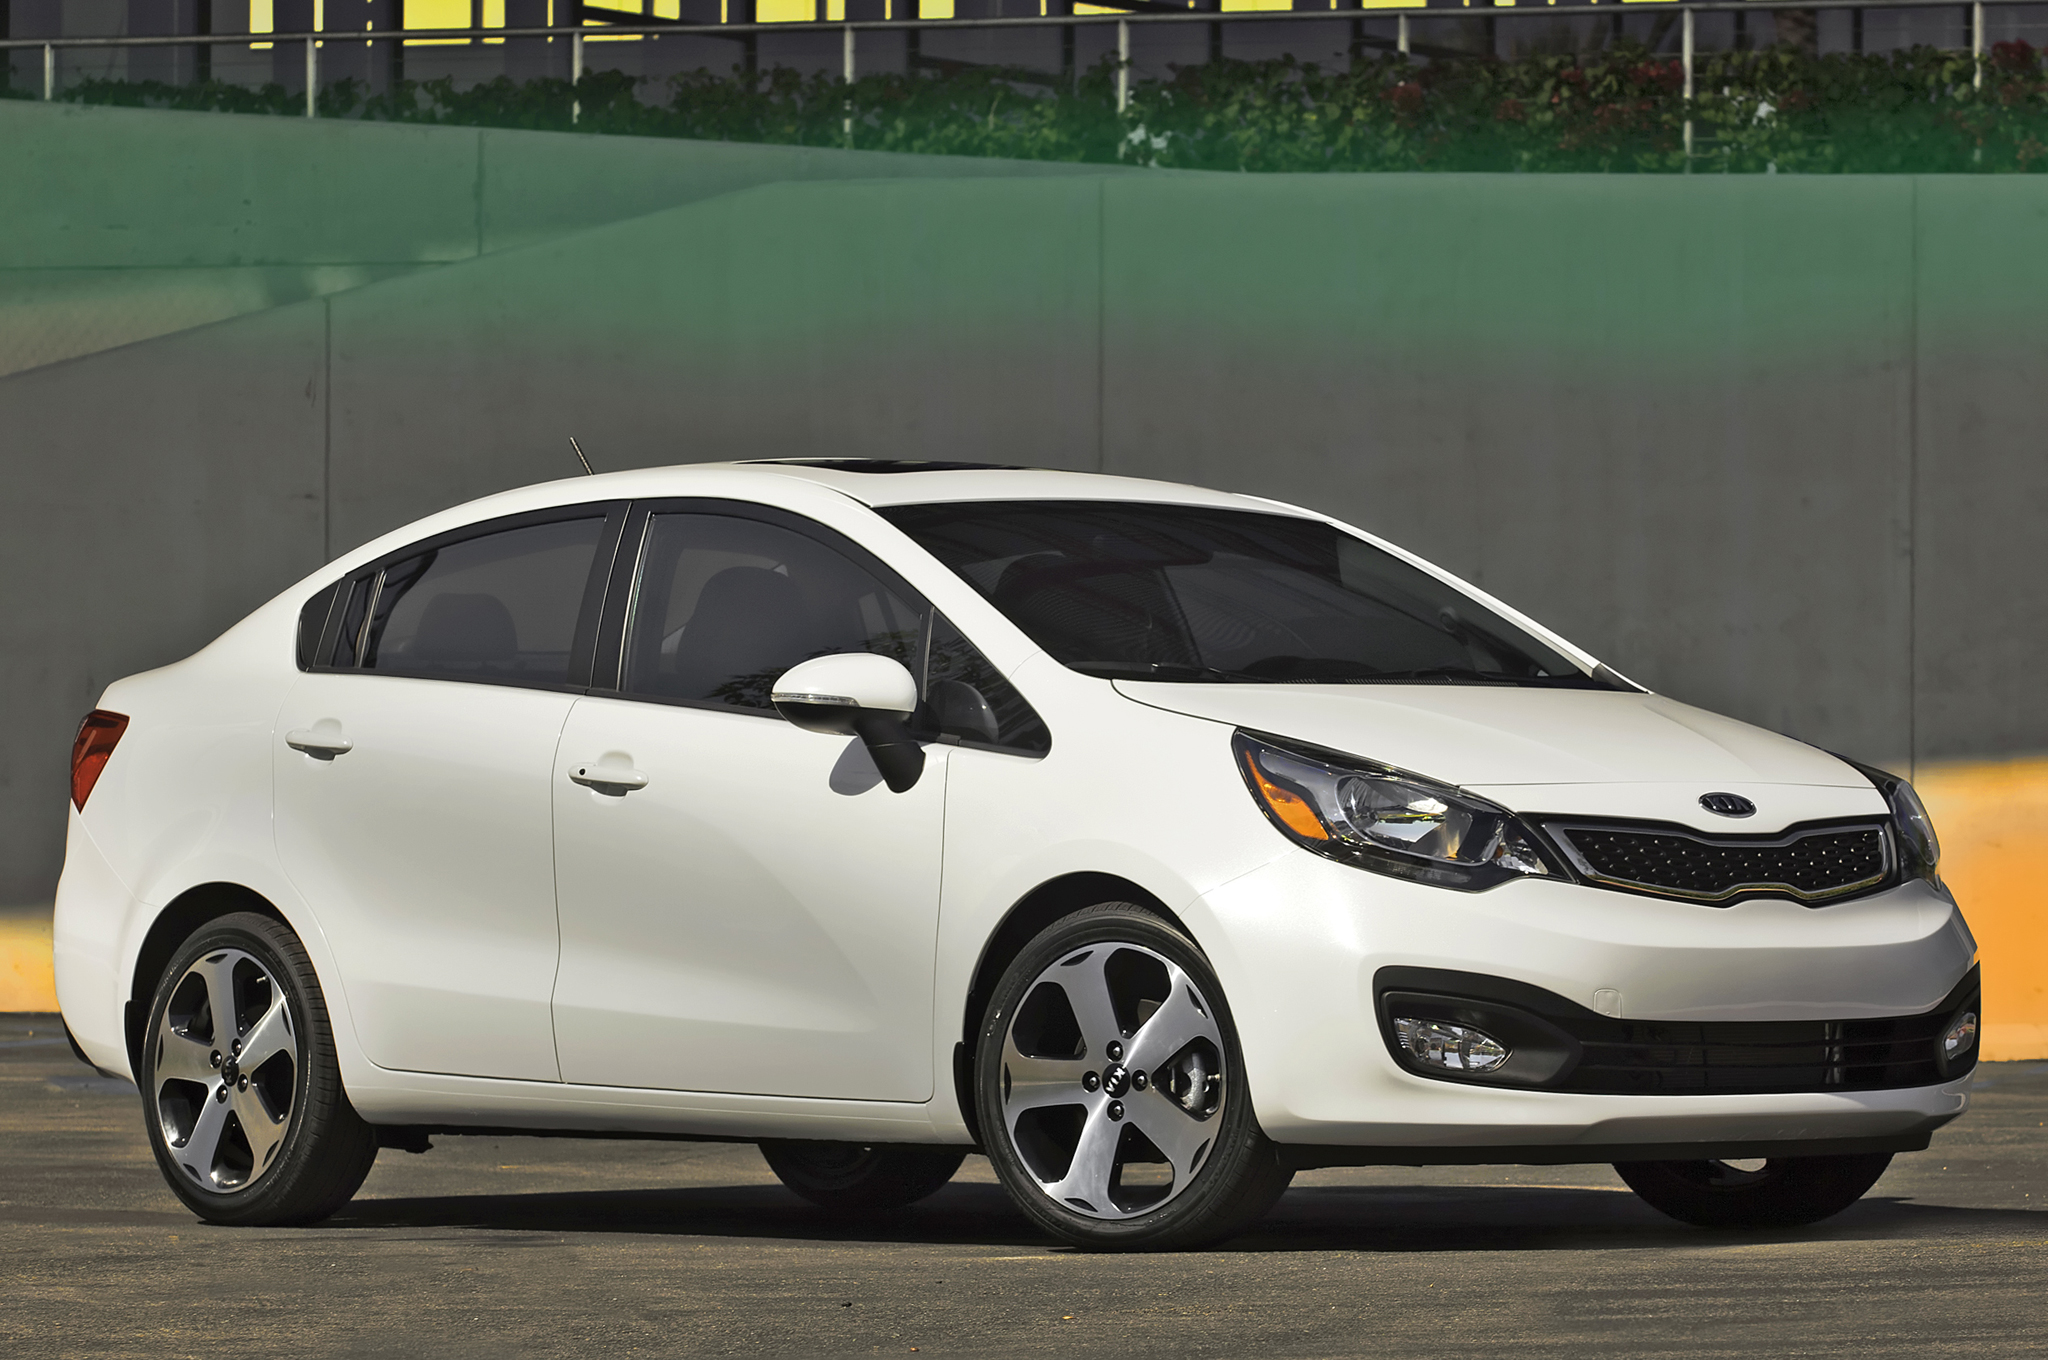 Kia Rio Sedan front Starts More Photo free download image